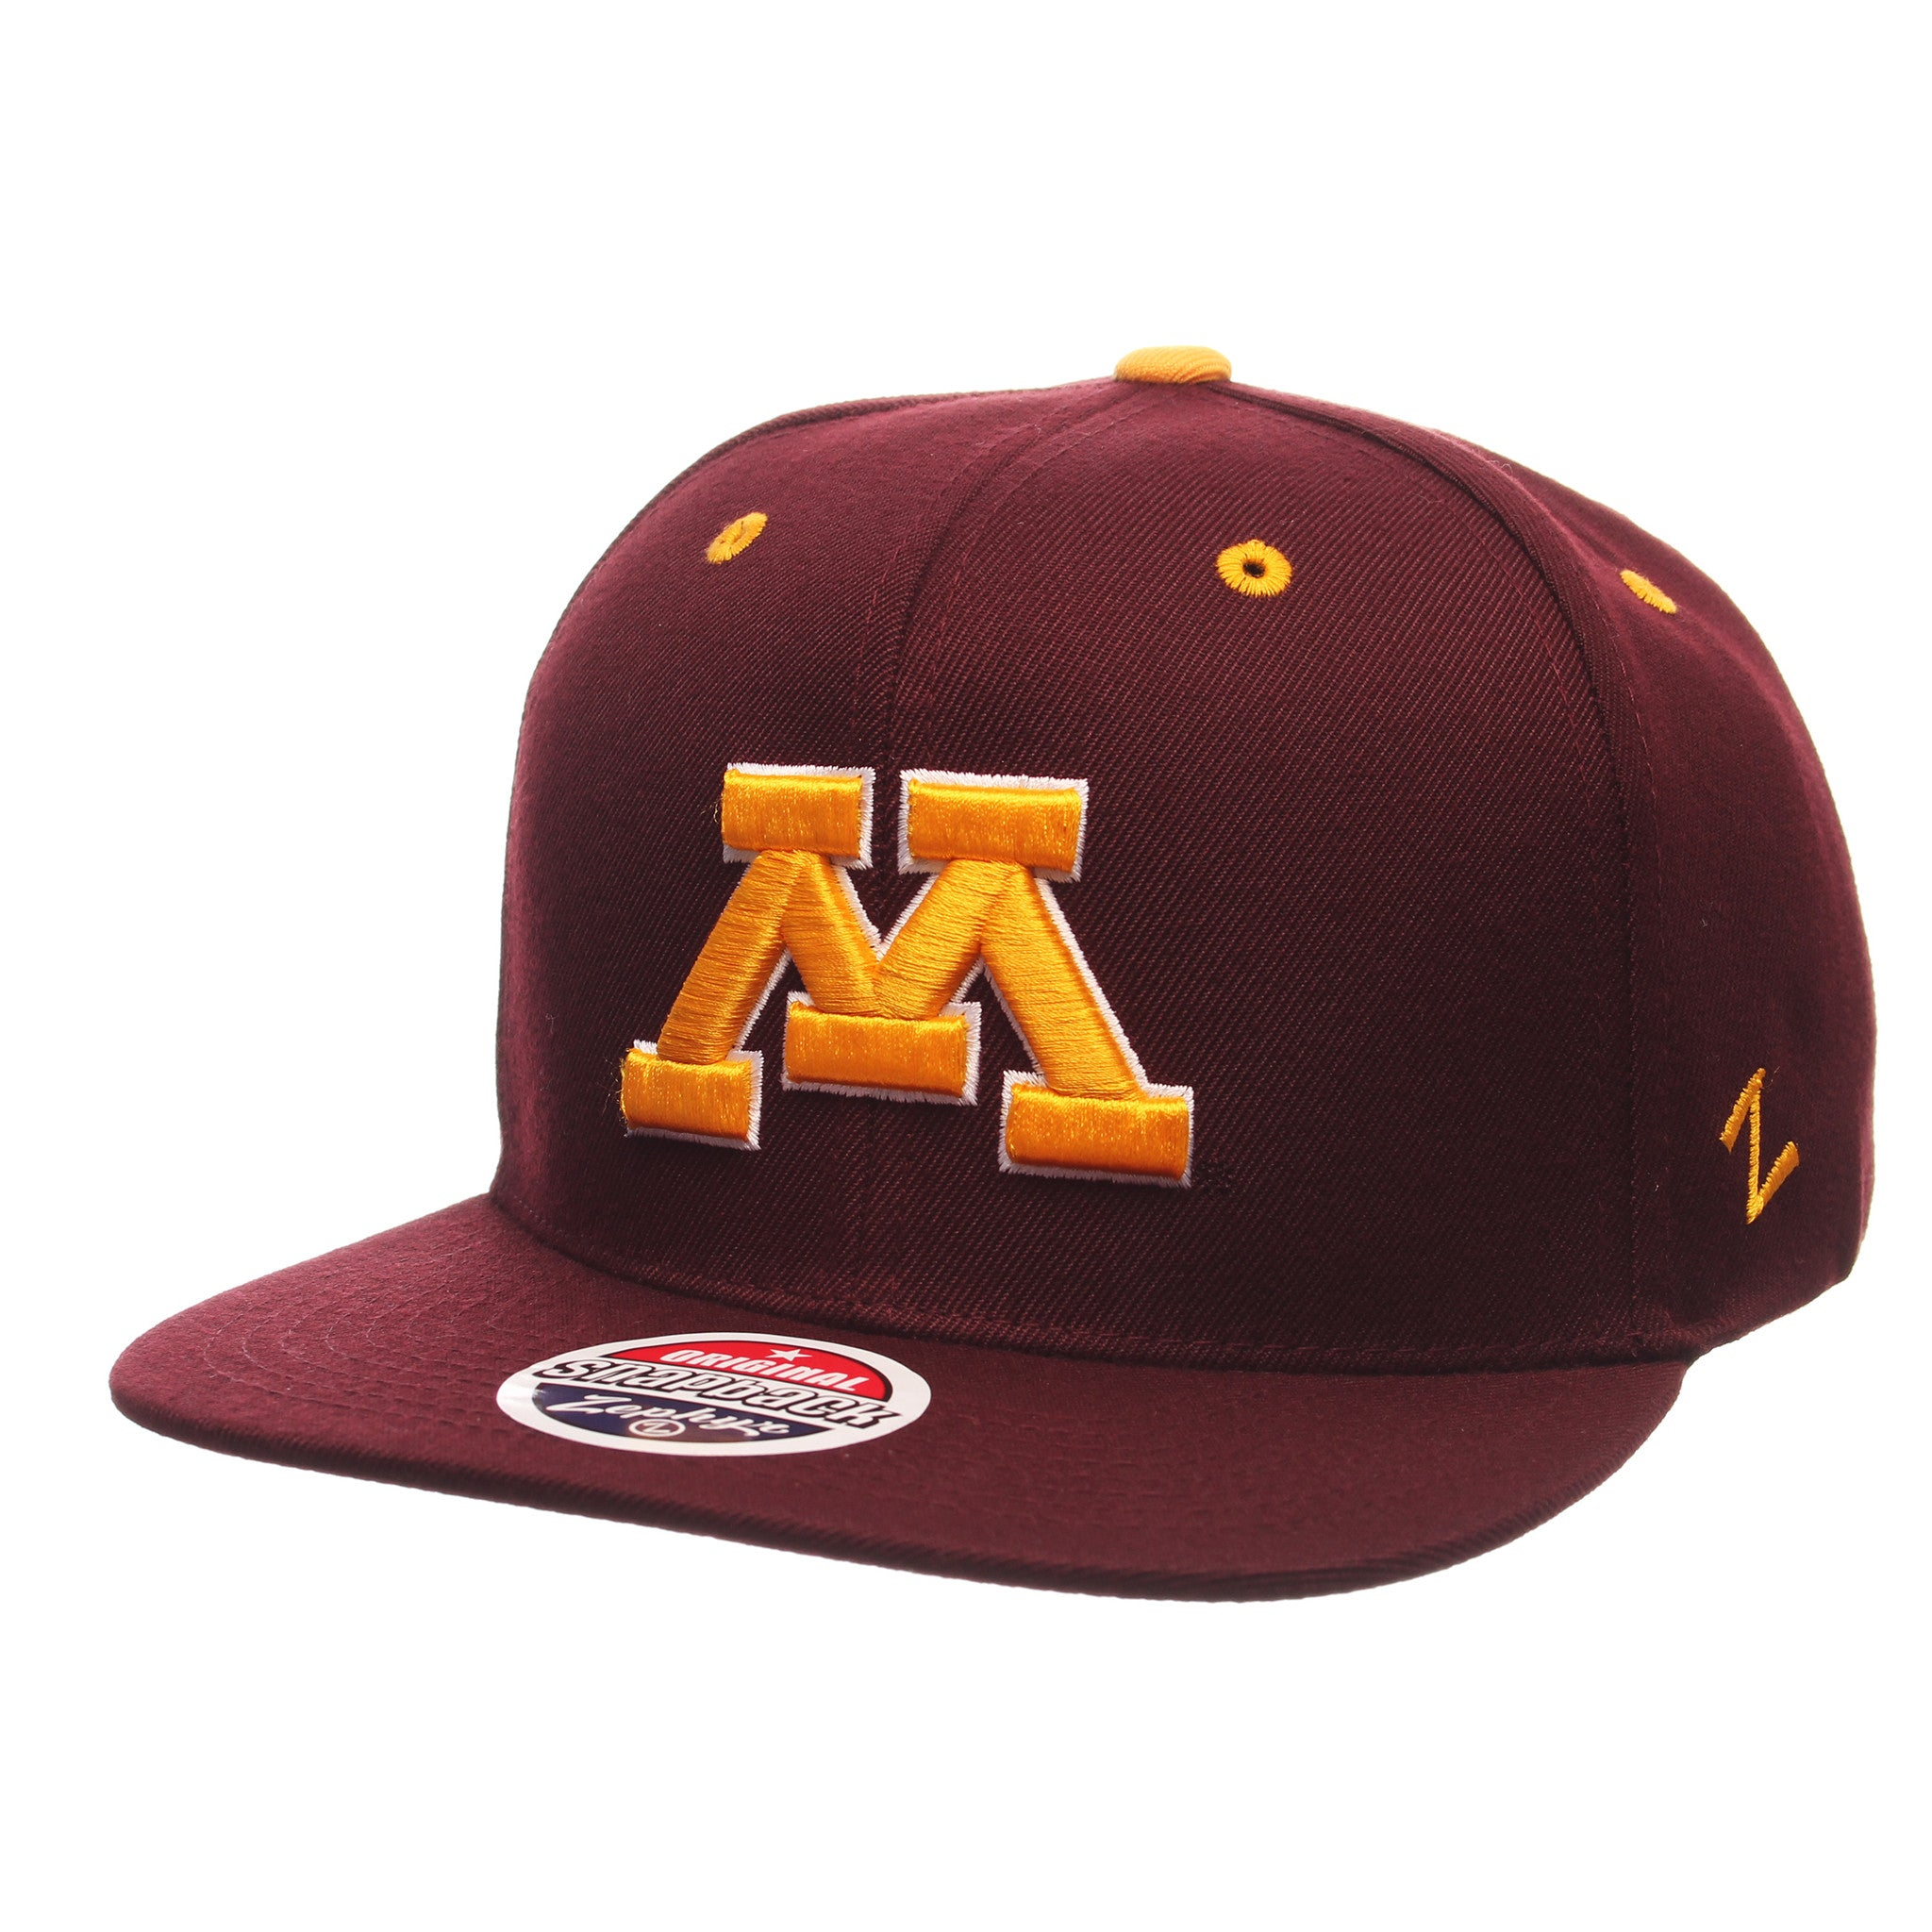 Minnesota (Minneapolis) Z11 32/5 (High) (M) Maroon Zwool Adjustable hats by Zephyr